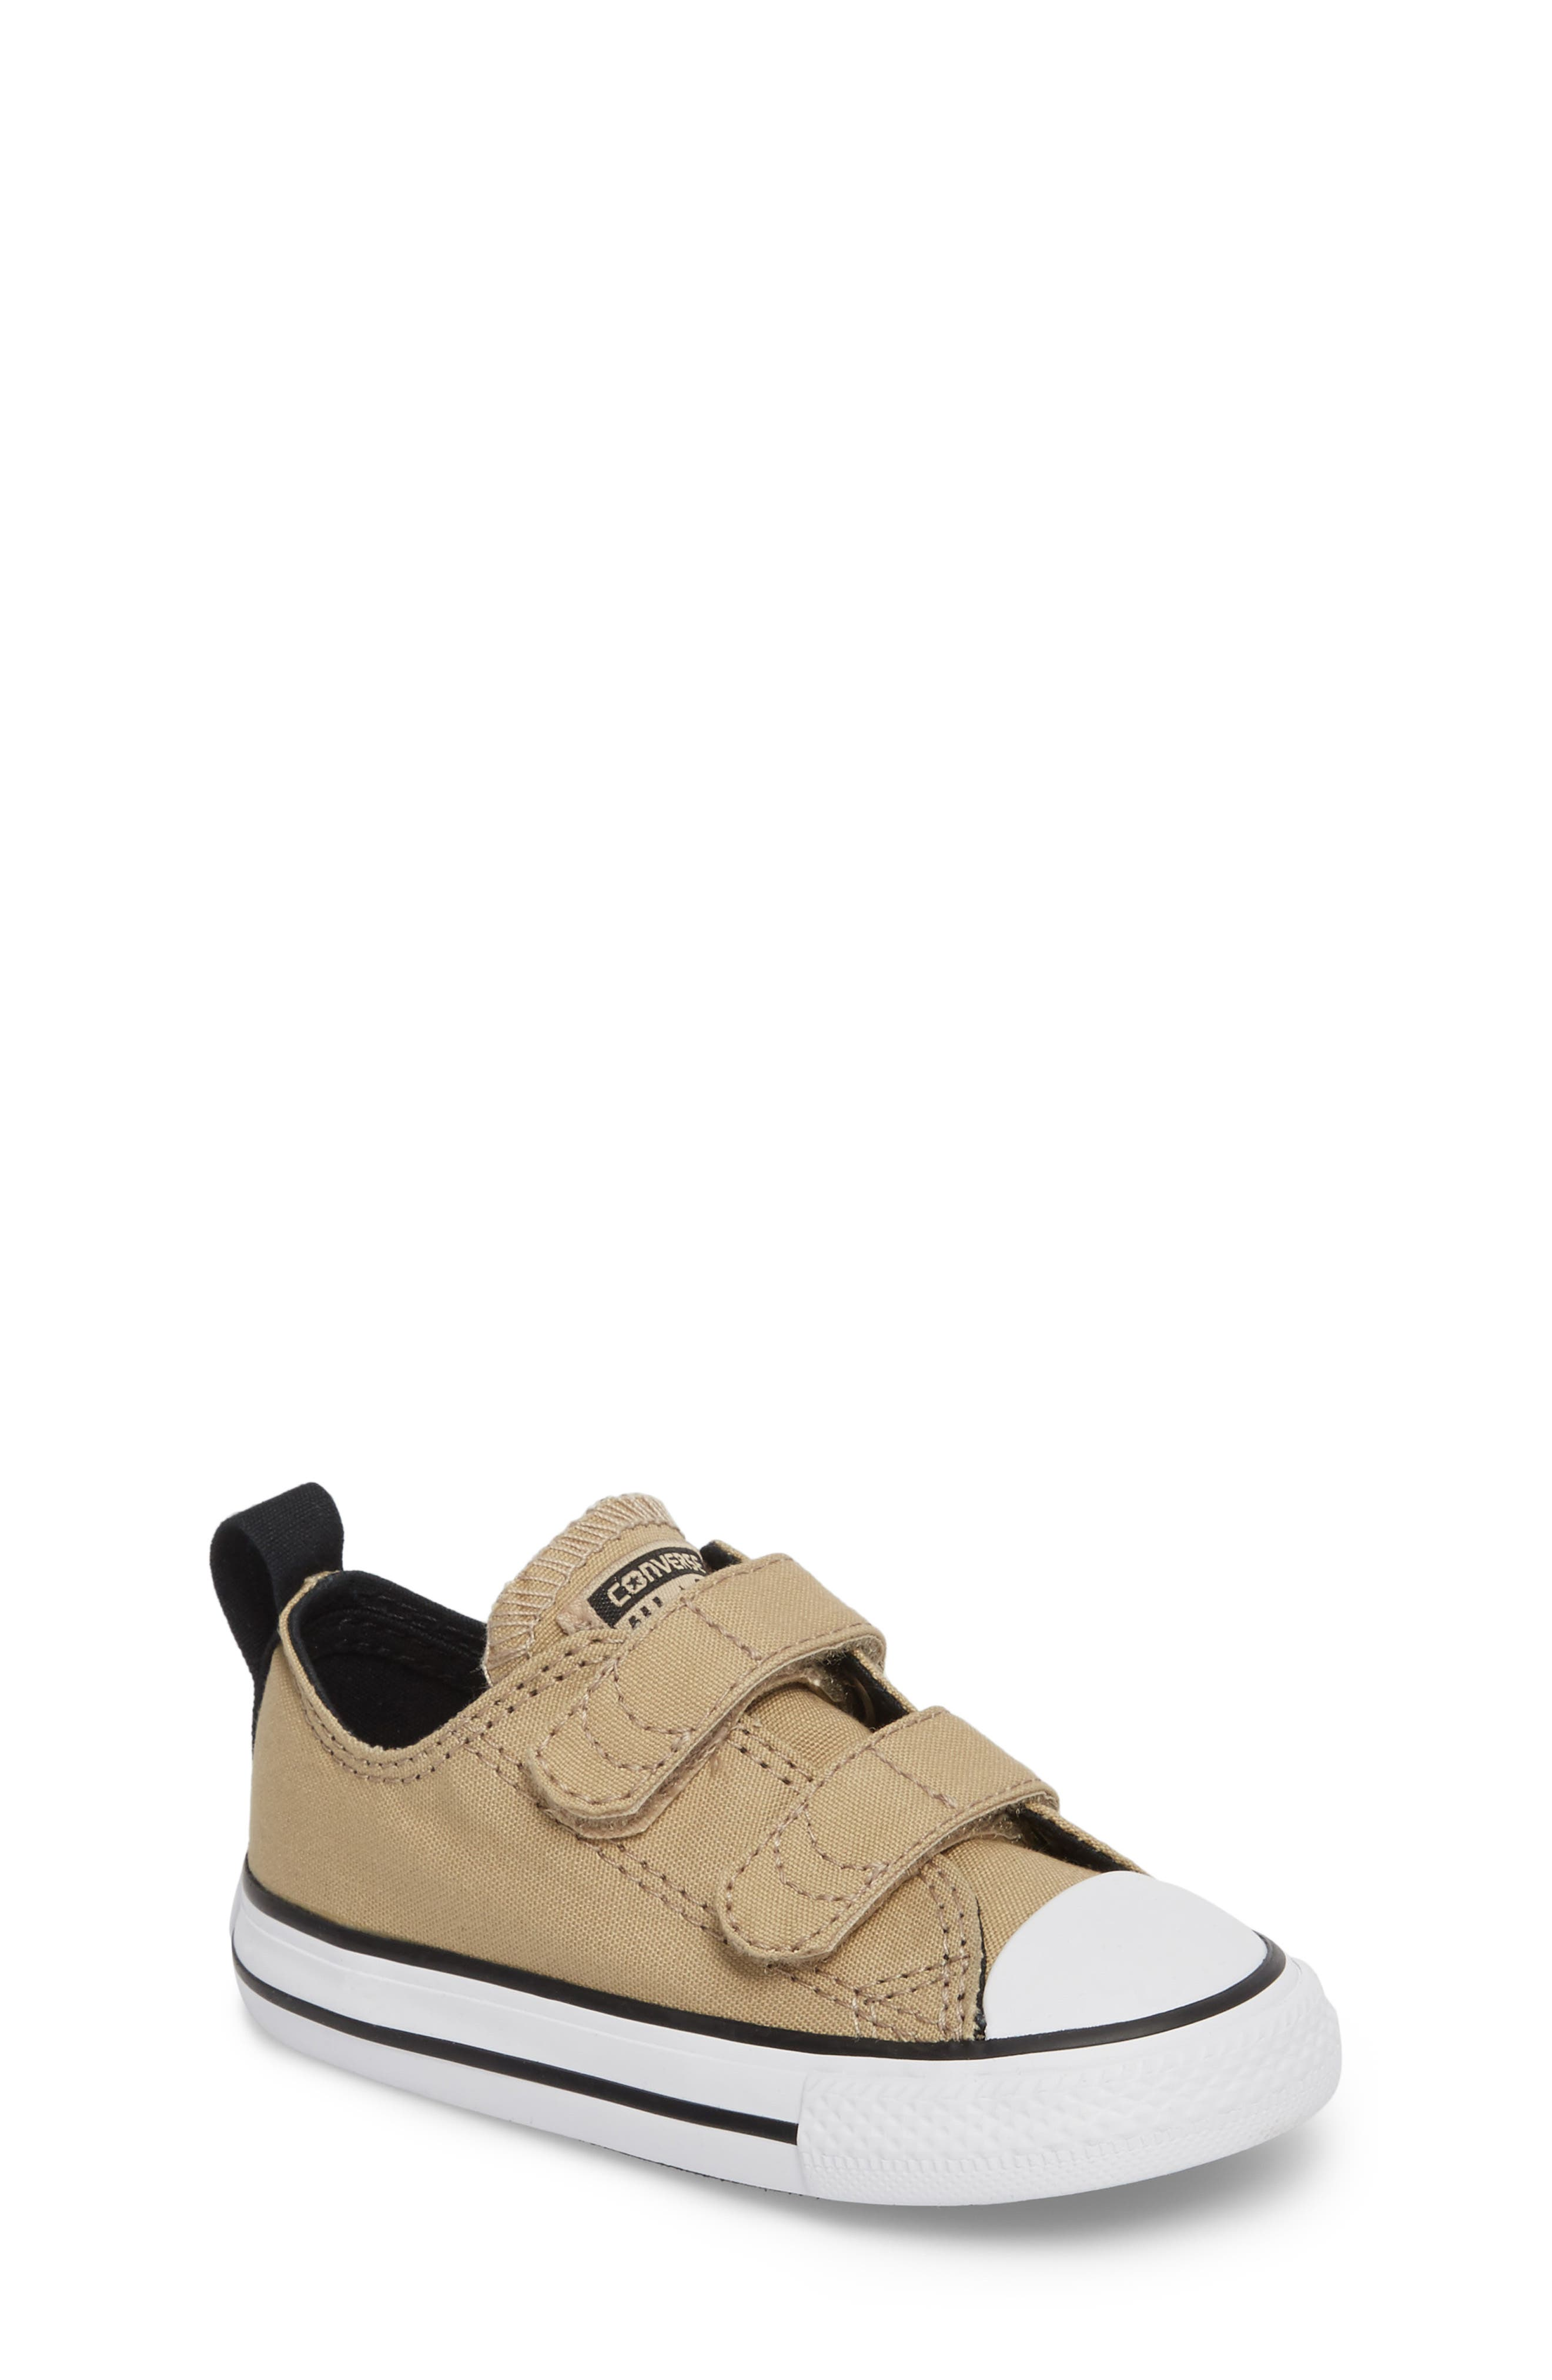 All Star<sup>®</sup> 2V Low Top Sneaker,                         Main,                         color, Vintage Khaki